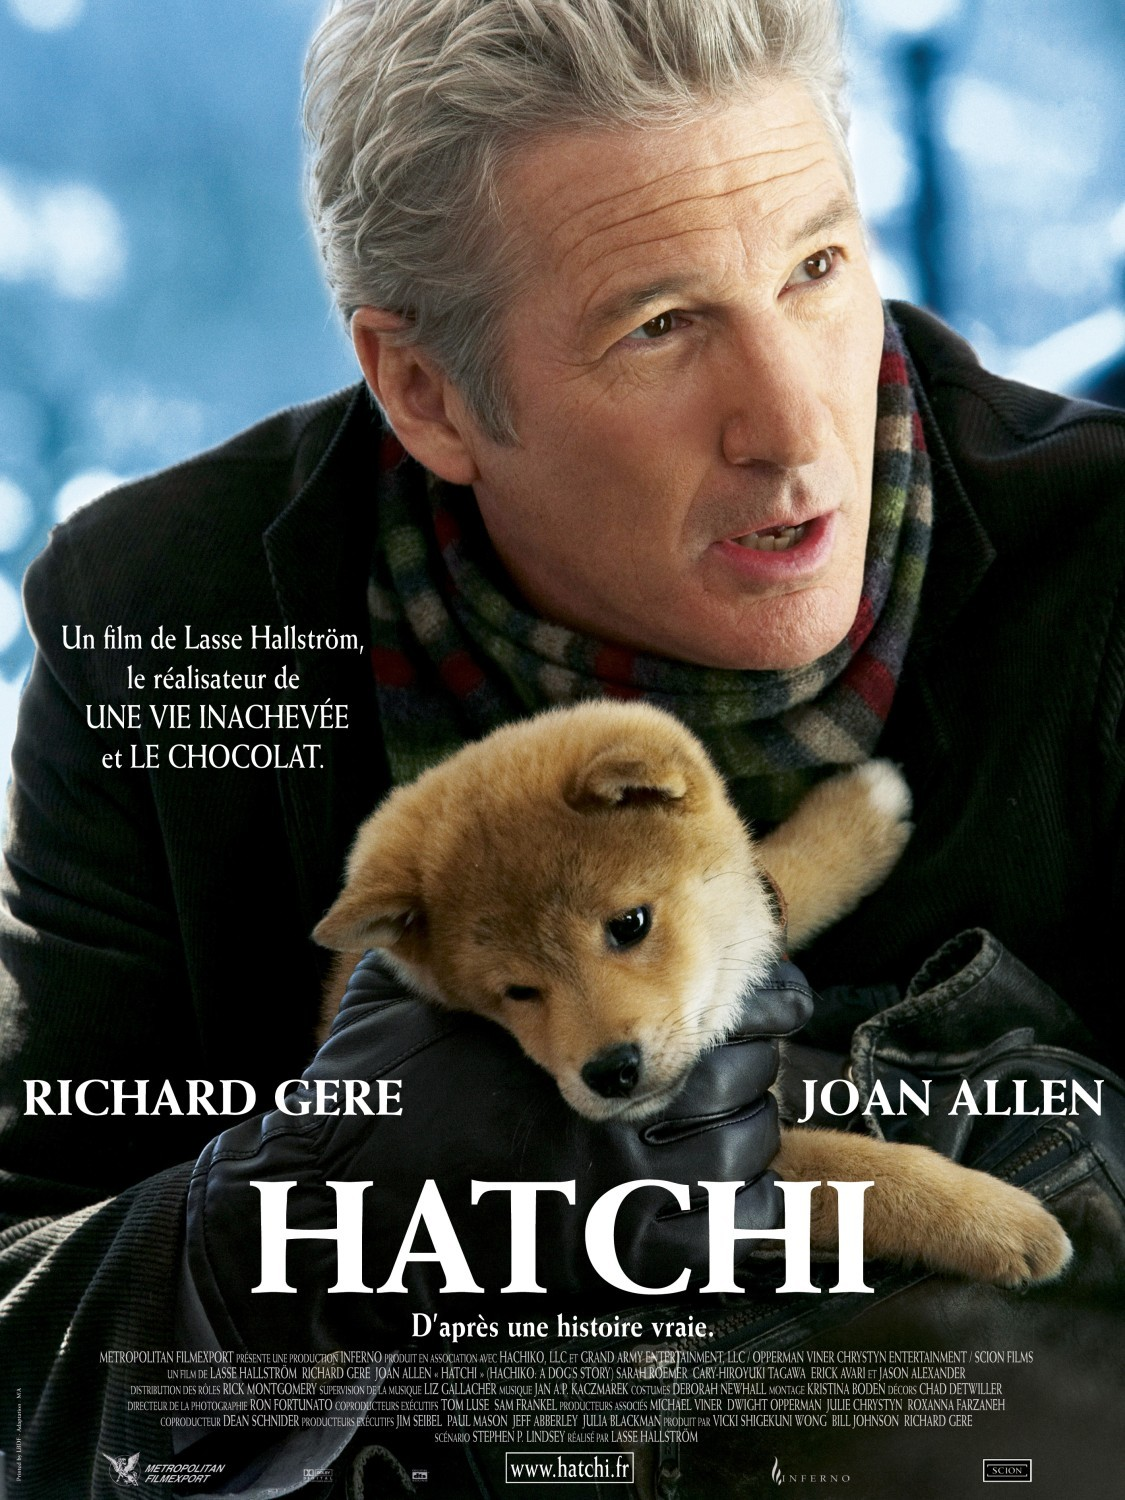 hachiko a dogs tale A drama based on the true story of a college professor's bond with the abandoned dog he takes into his home written by 4d722e446f6d 25124k.